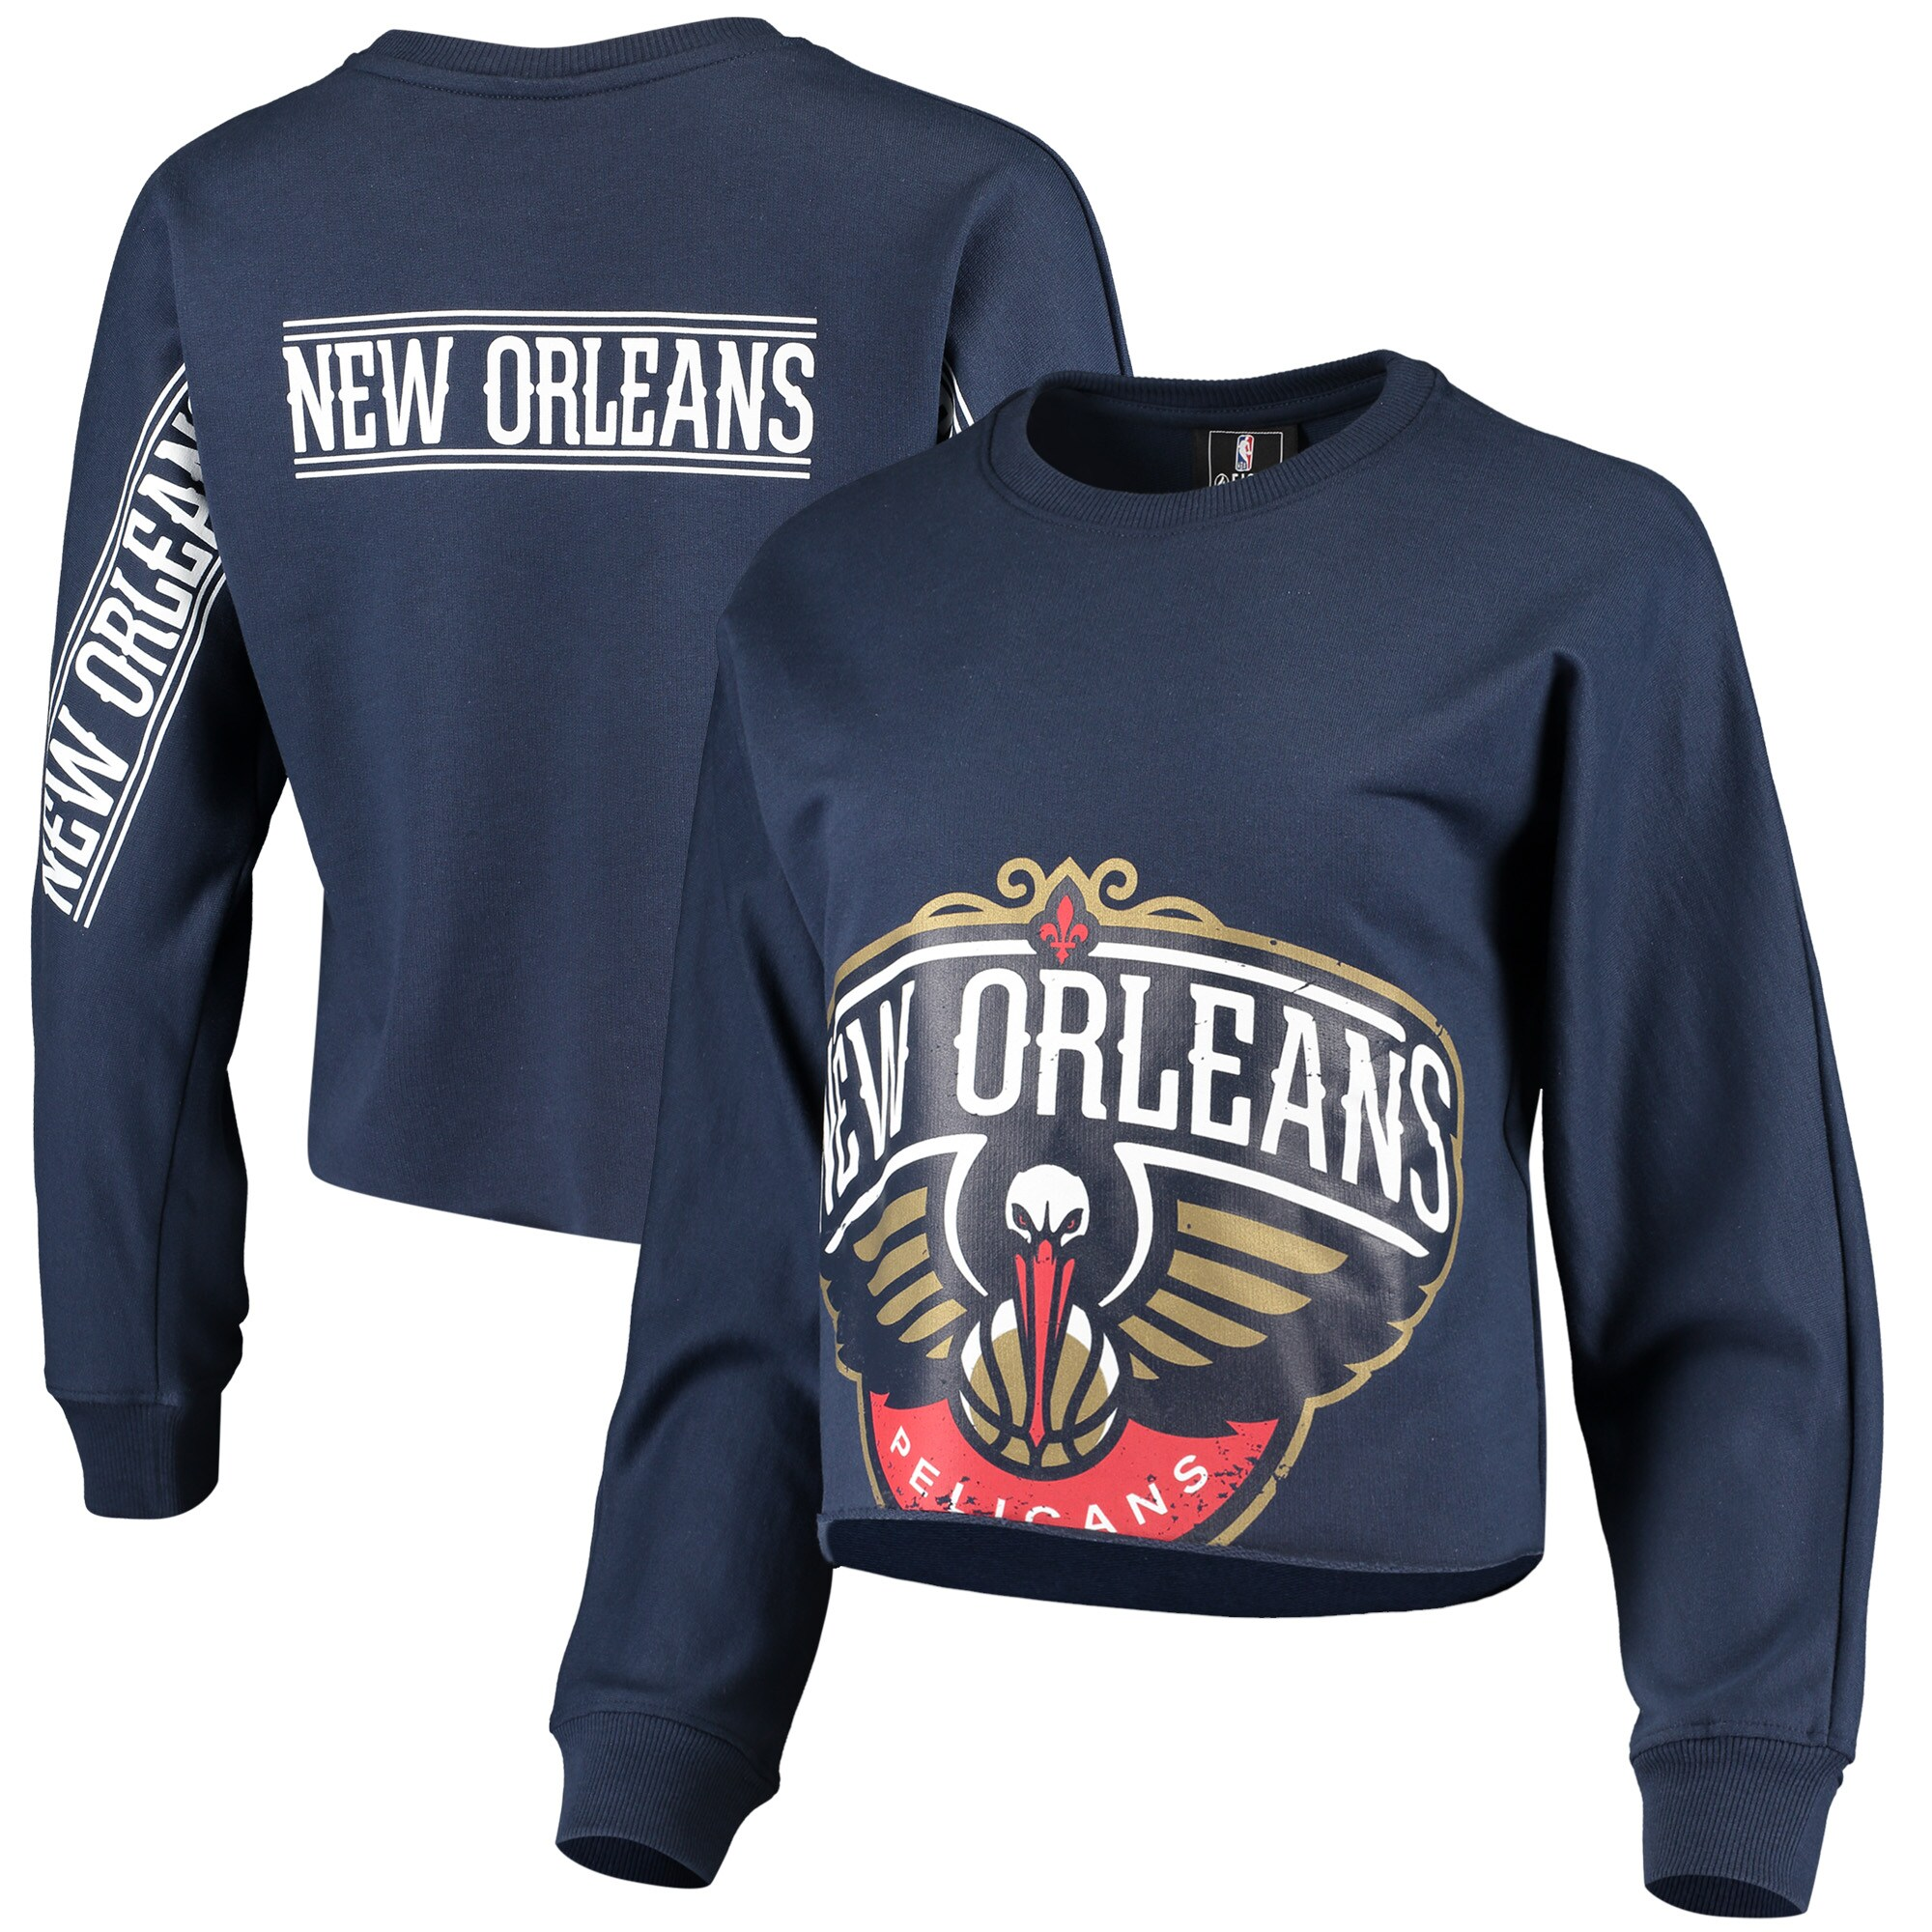 New Orleans Pelicans Women's Cropped Long Sleeve T-Shirt - Navy